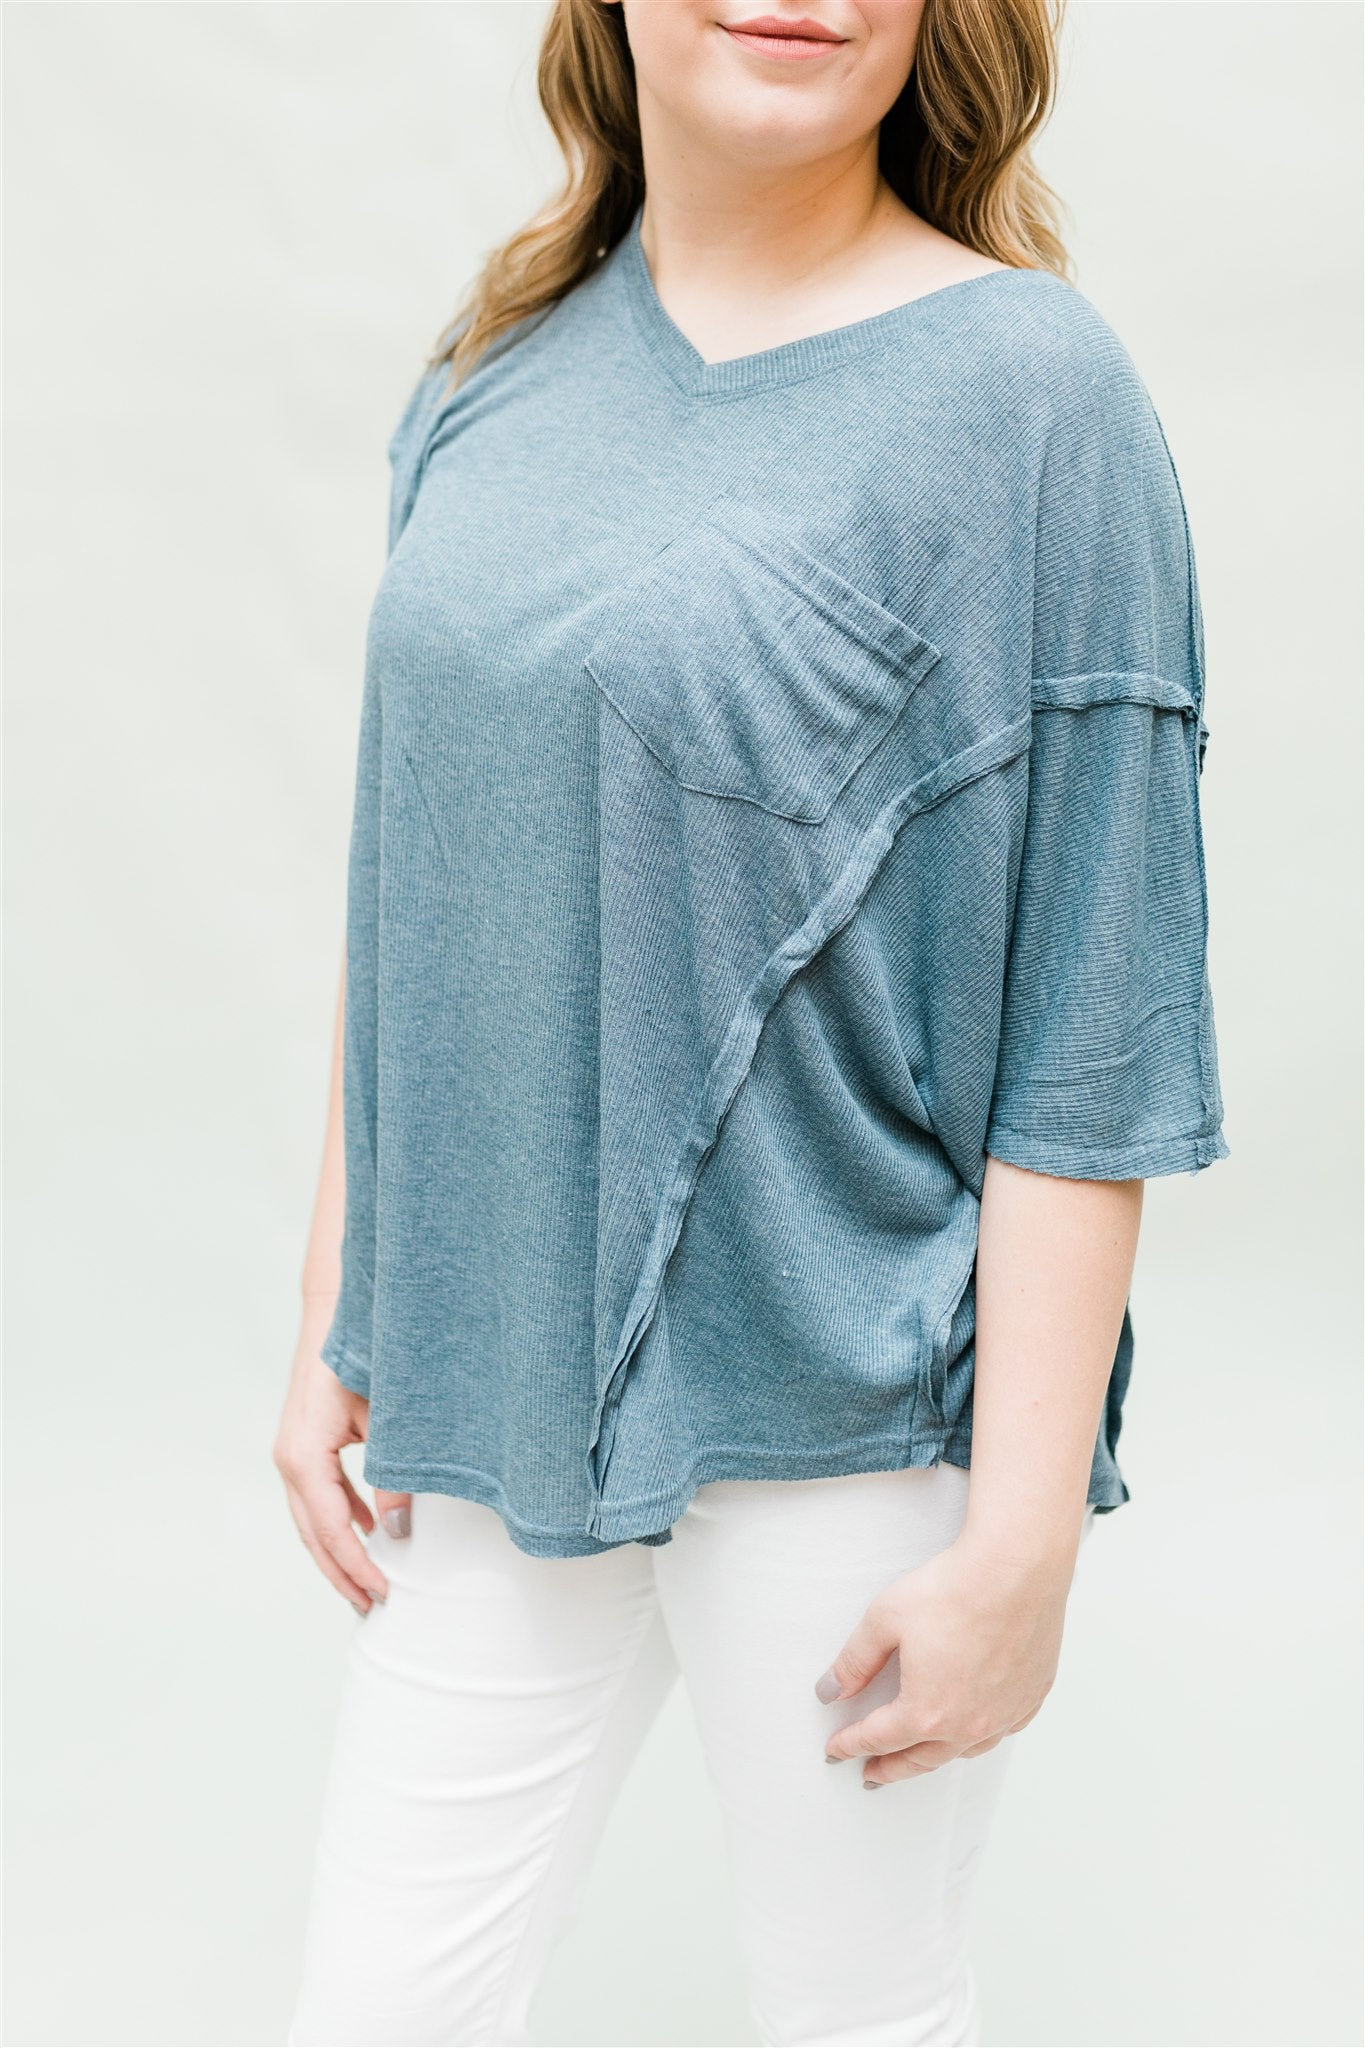 Blue Skies Ahead Tunic - Slate